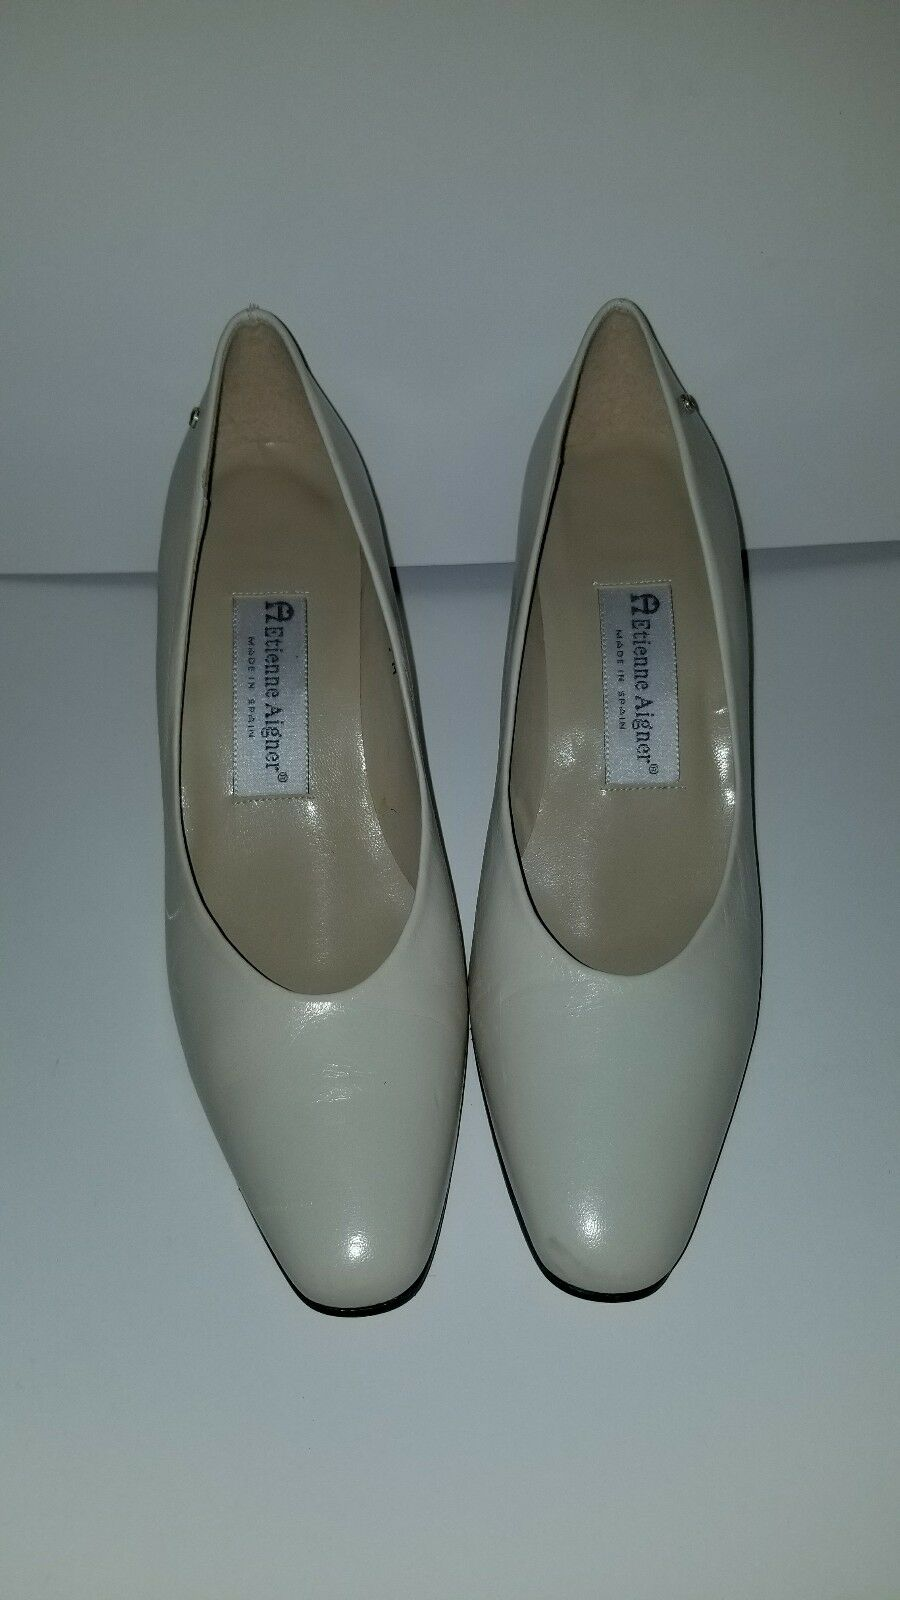 Etienne Aigner Creme Heels Heels Heels Taille 7 1 2 M all leather top VINTAGE 1d5a71